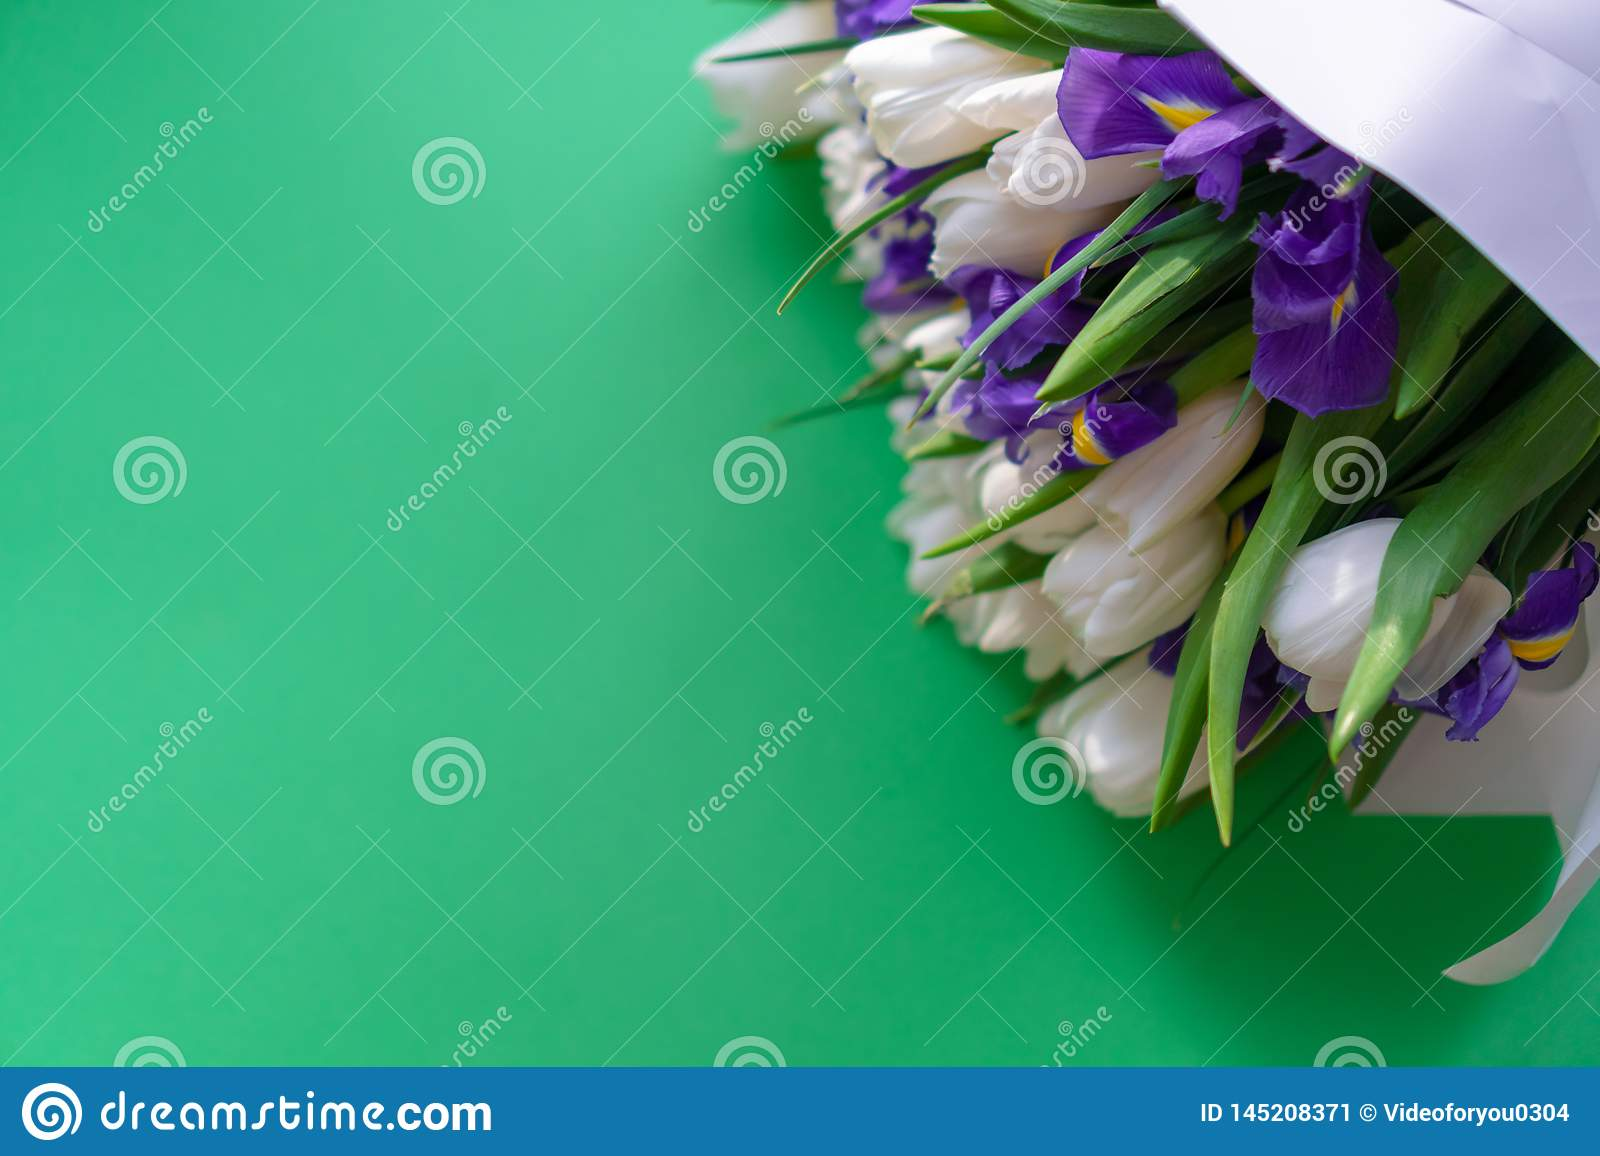 White tulips and purple irises on a green background